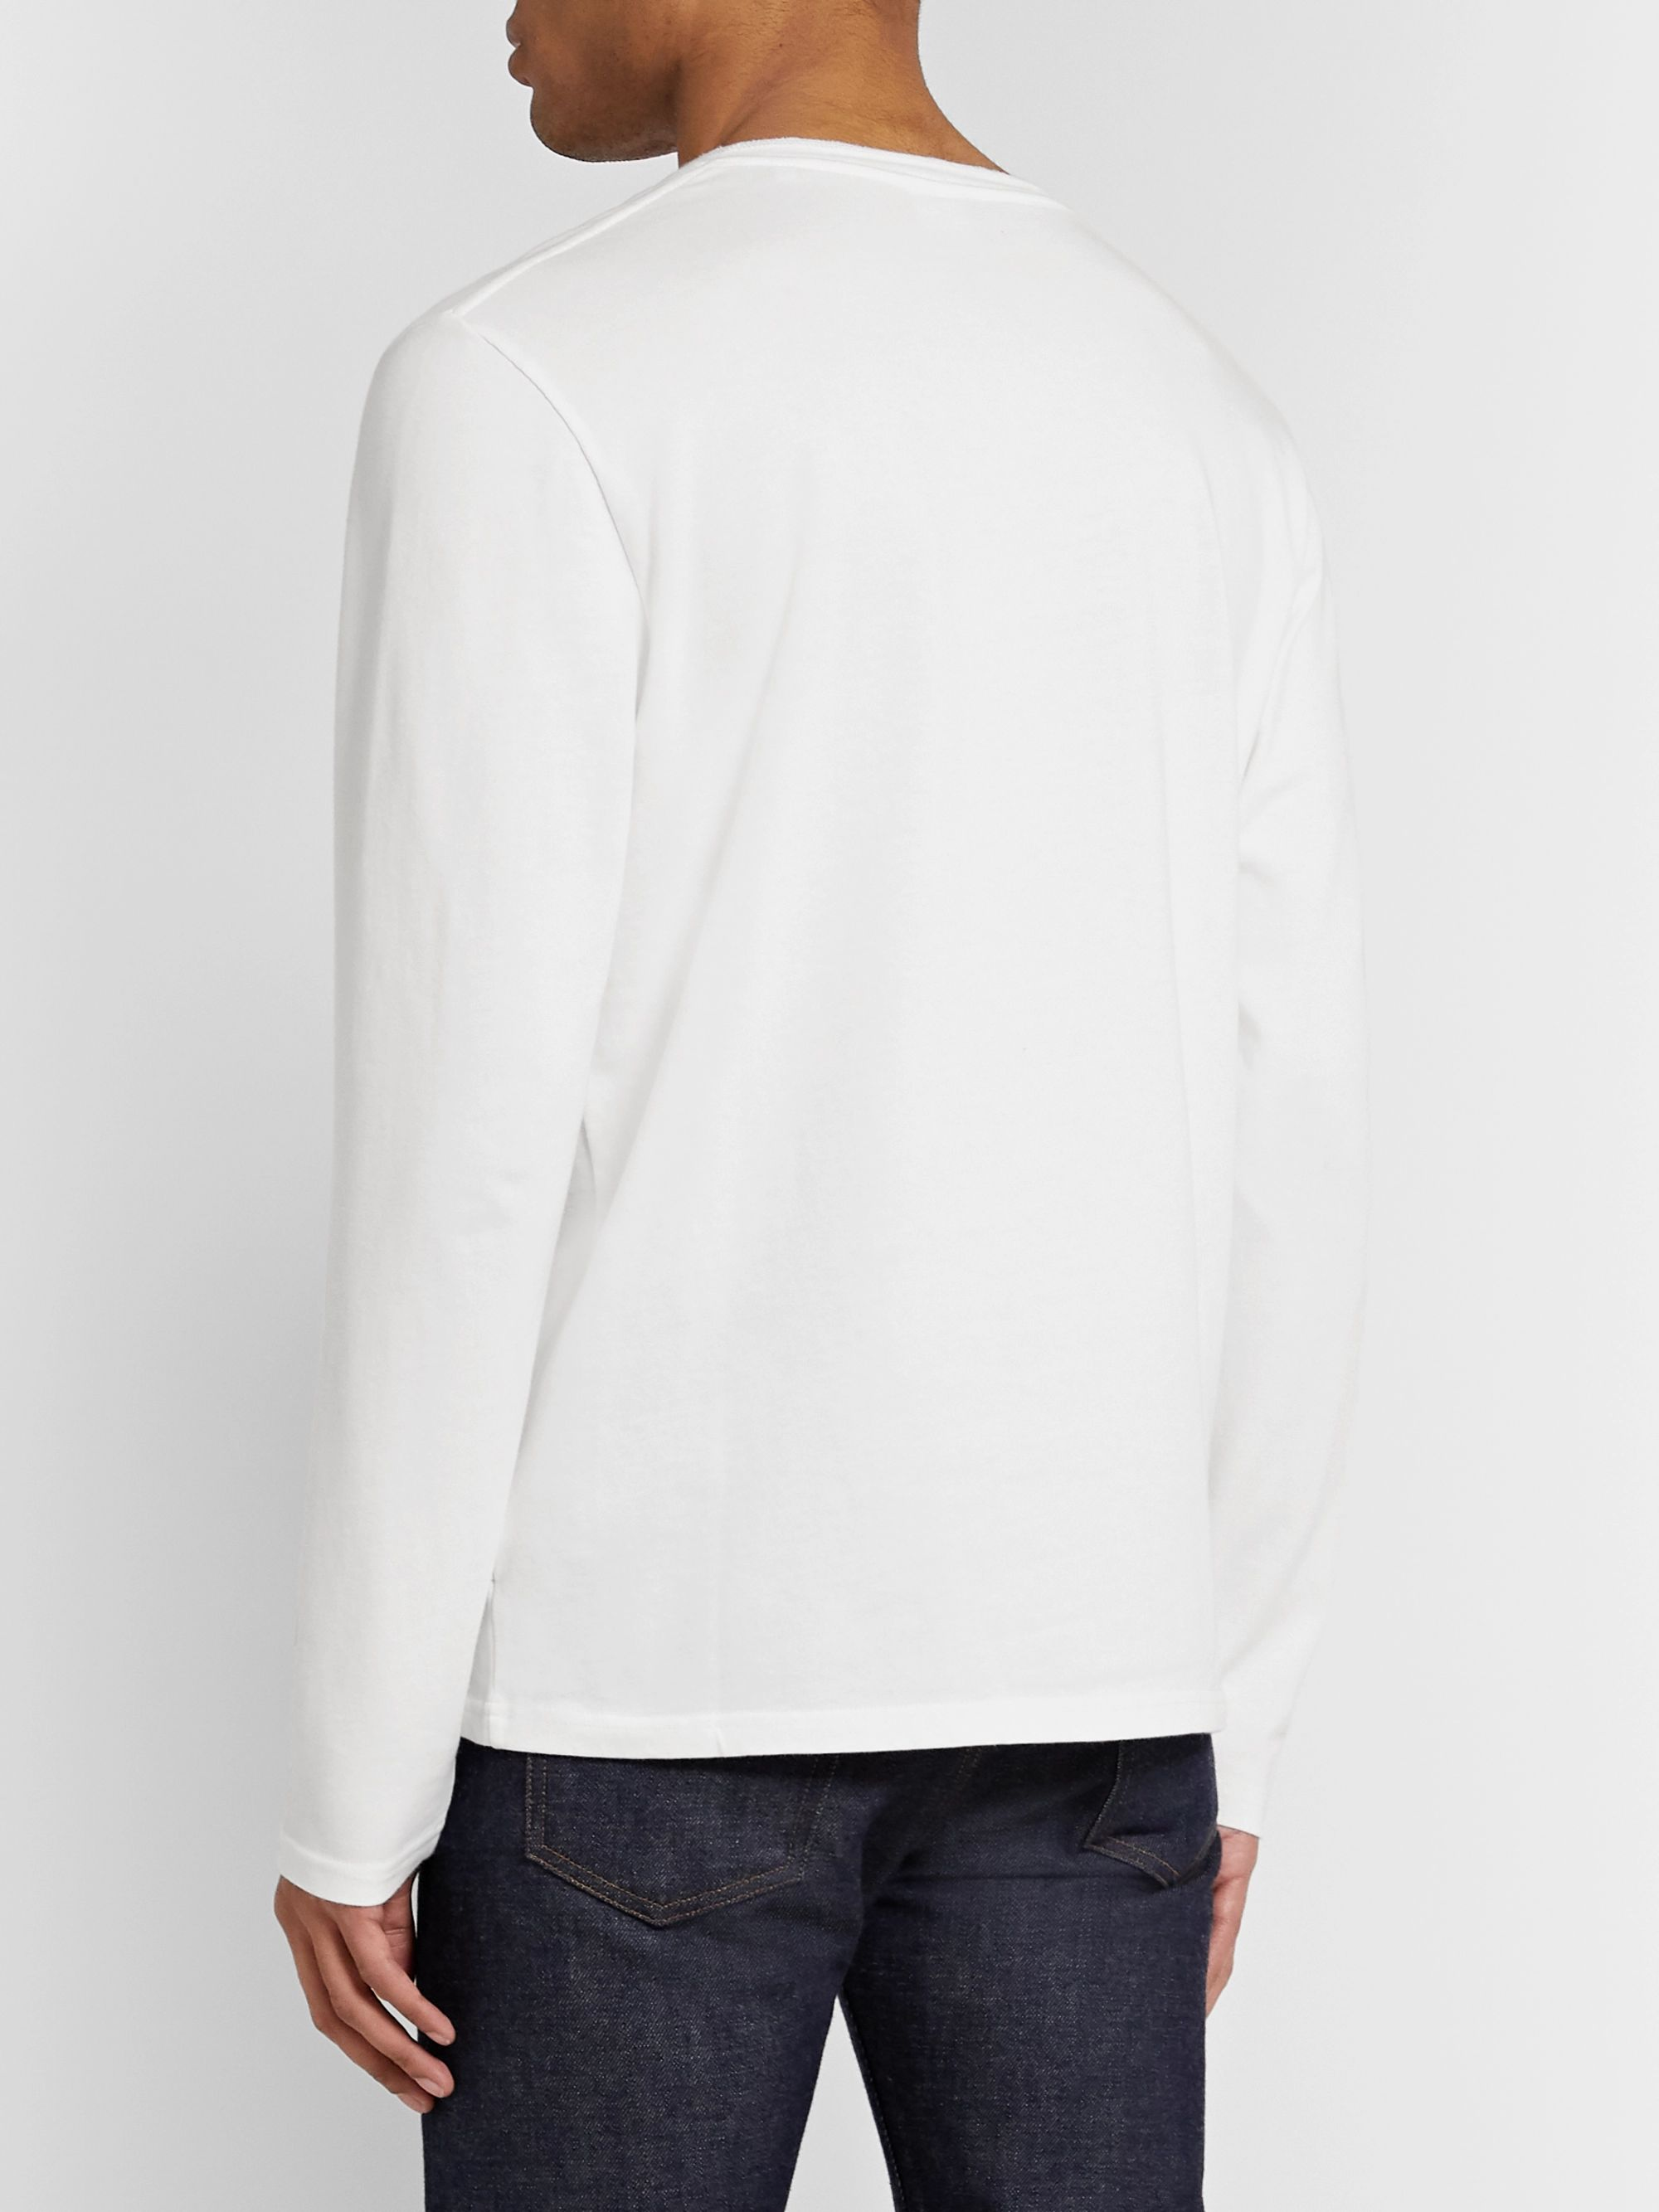 NN07 David Mélange Cotton-Jersey Henley T-Shirt